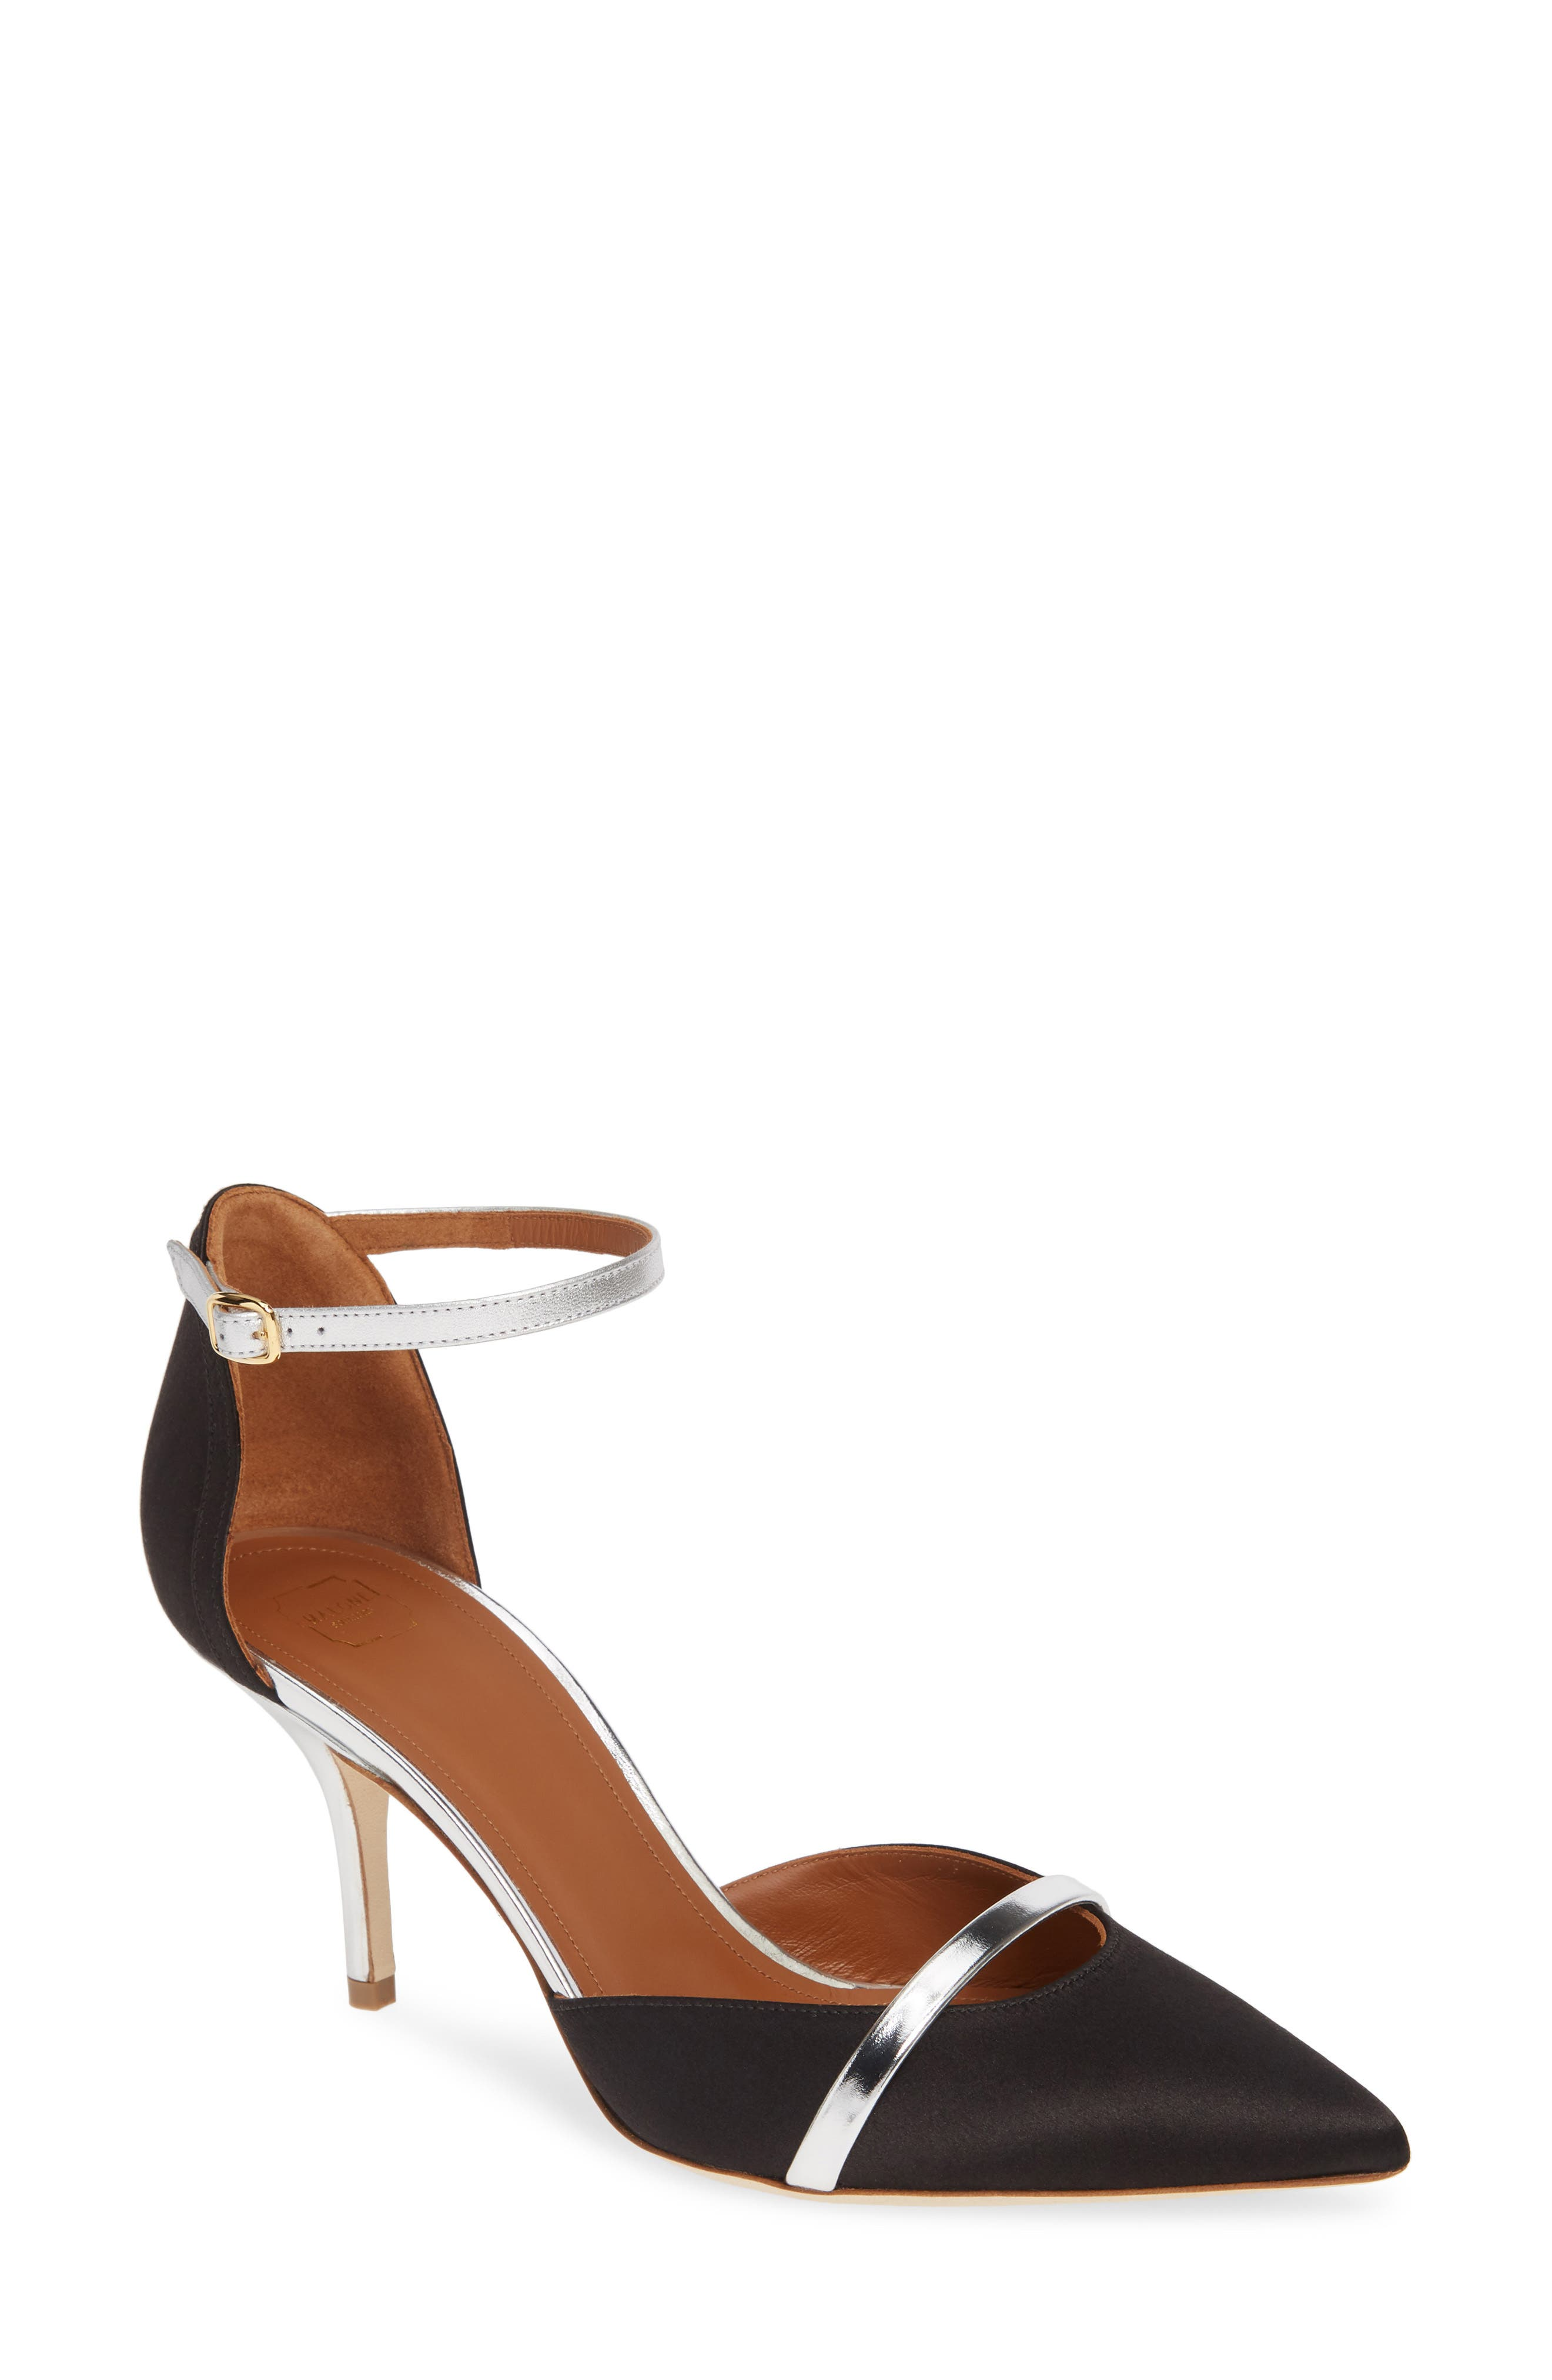 Malone Souliers Booboo Ankle Strap Pump - Black